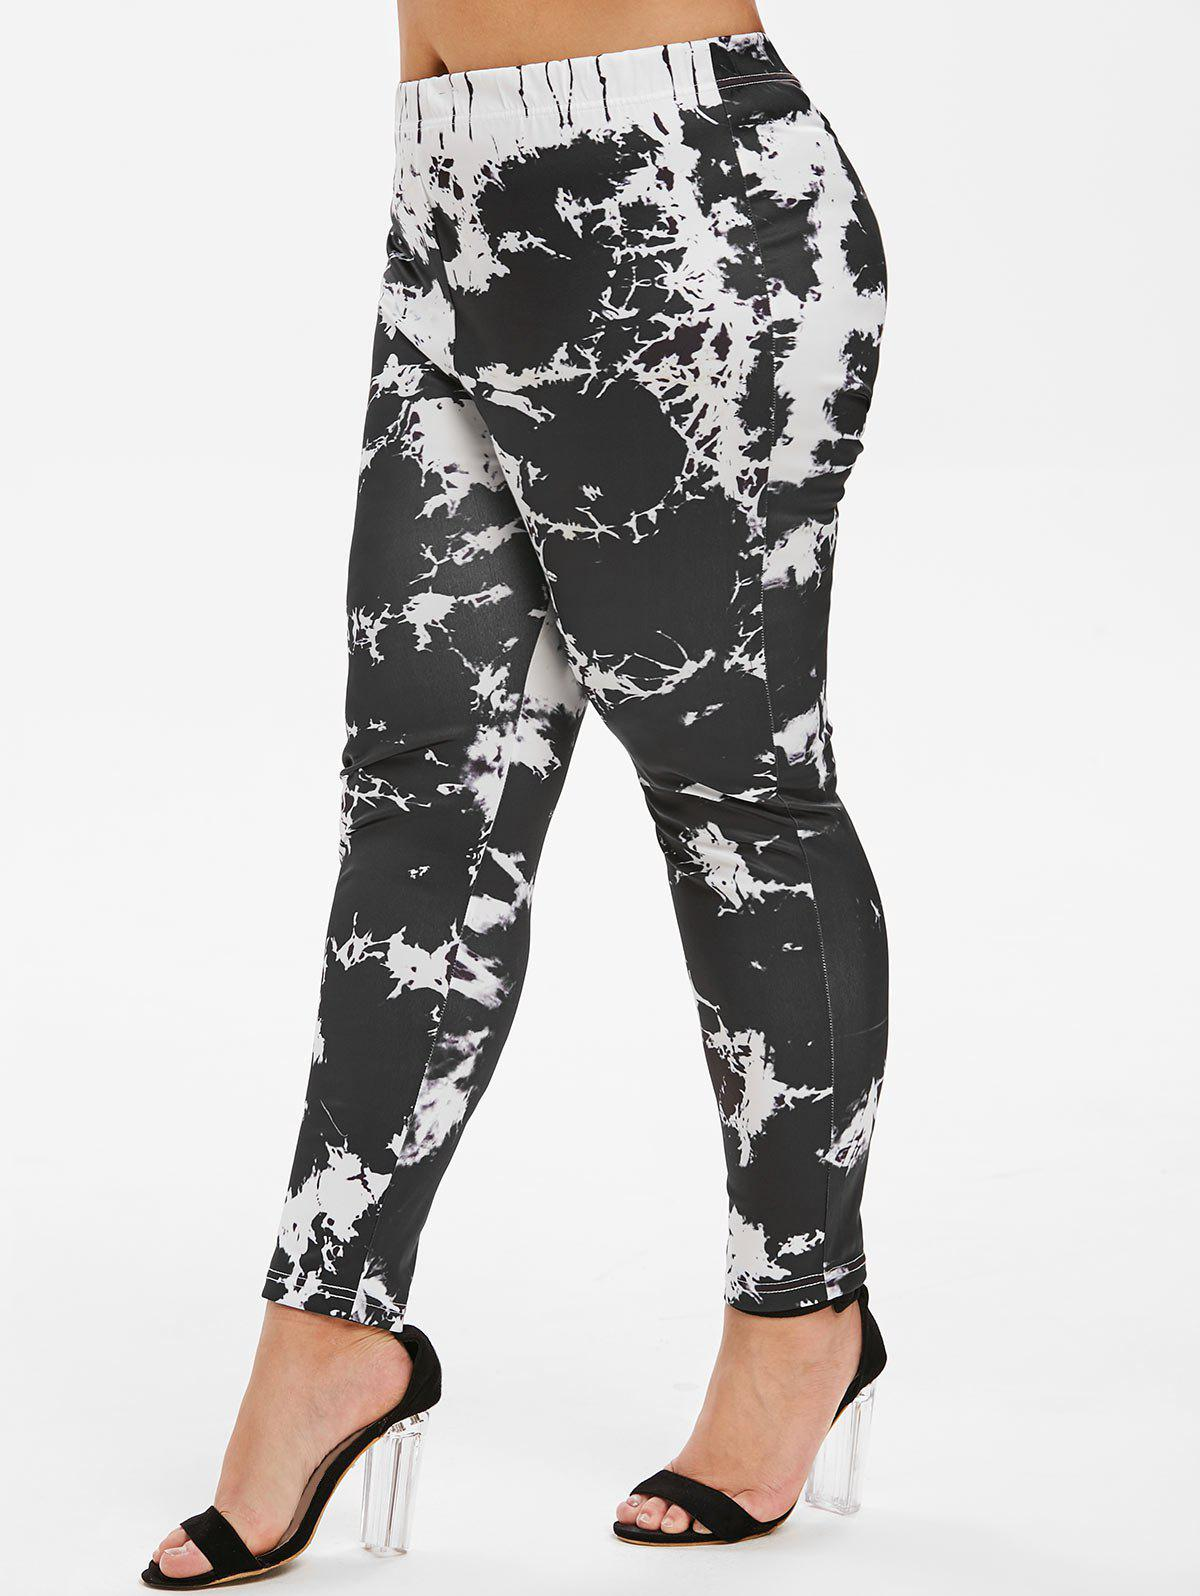 Marble Print High Waisted Skinny Plus Size Pants - BLACK L